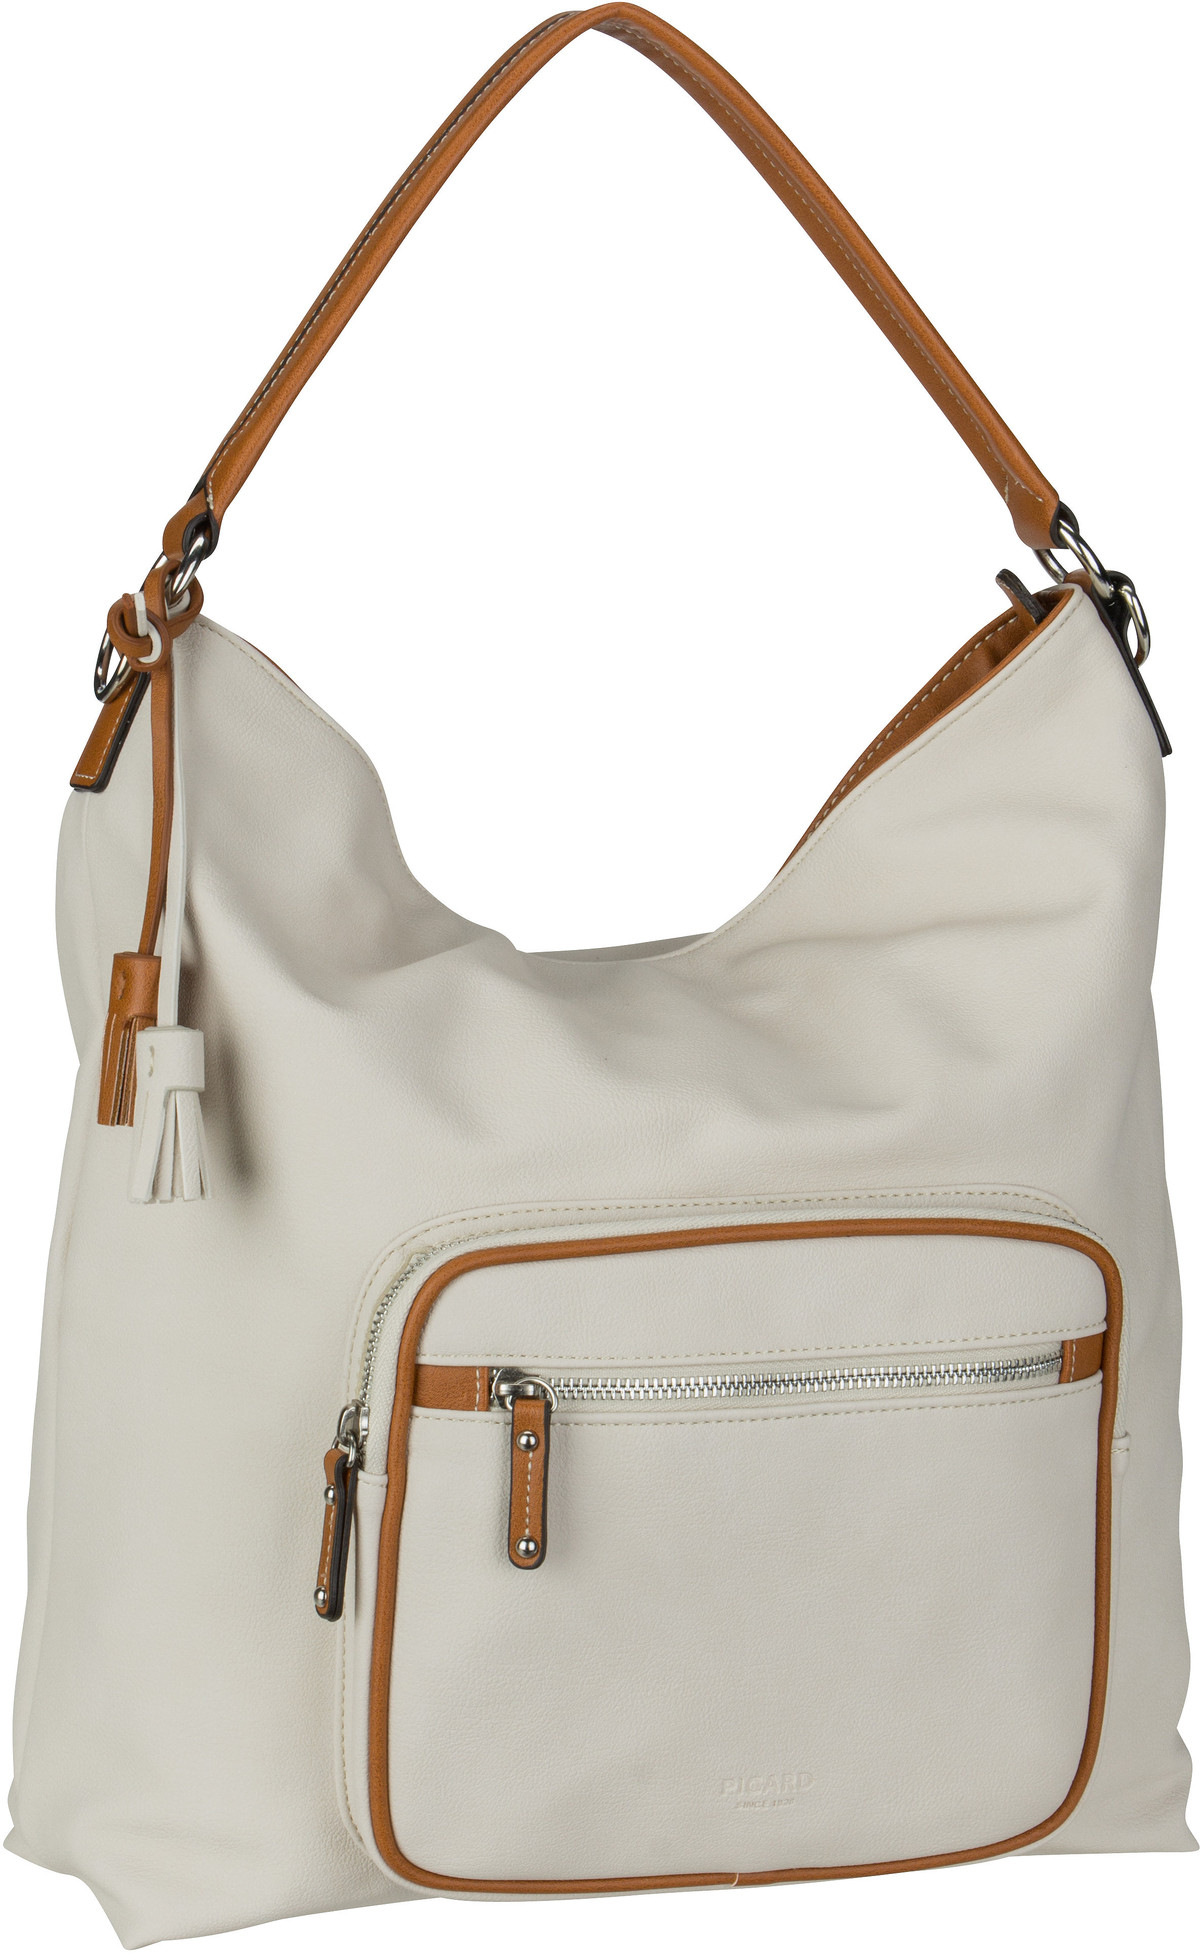 Handtasche Holly 2855 Linen/Kombi